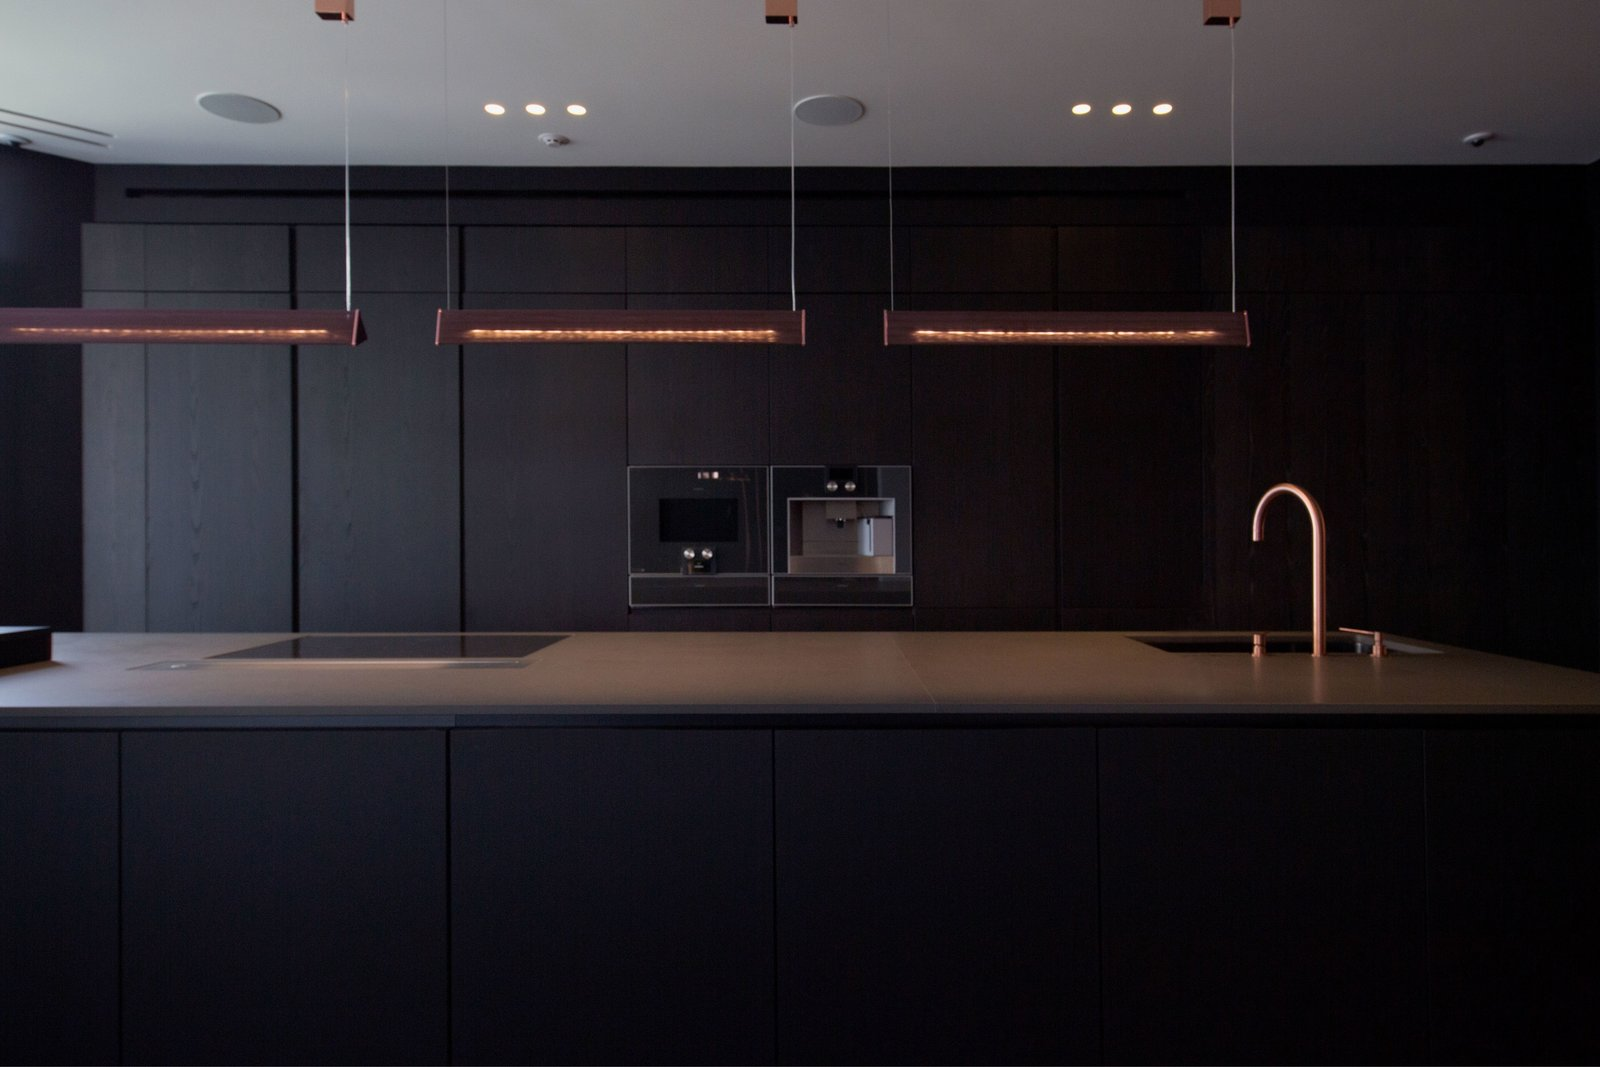 Kitchen, Pendant Lighting, Ice Maker, Drop In Sink, and Wood Cabinet  Photo 5 of 13 in A Family's Kiev Apartment Is Filled With Copper, Marble, and a Sophisticated Palette